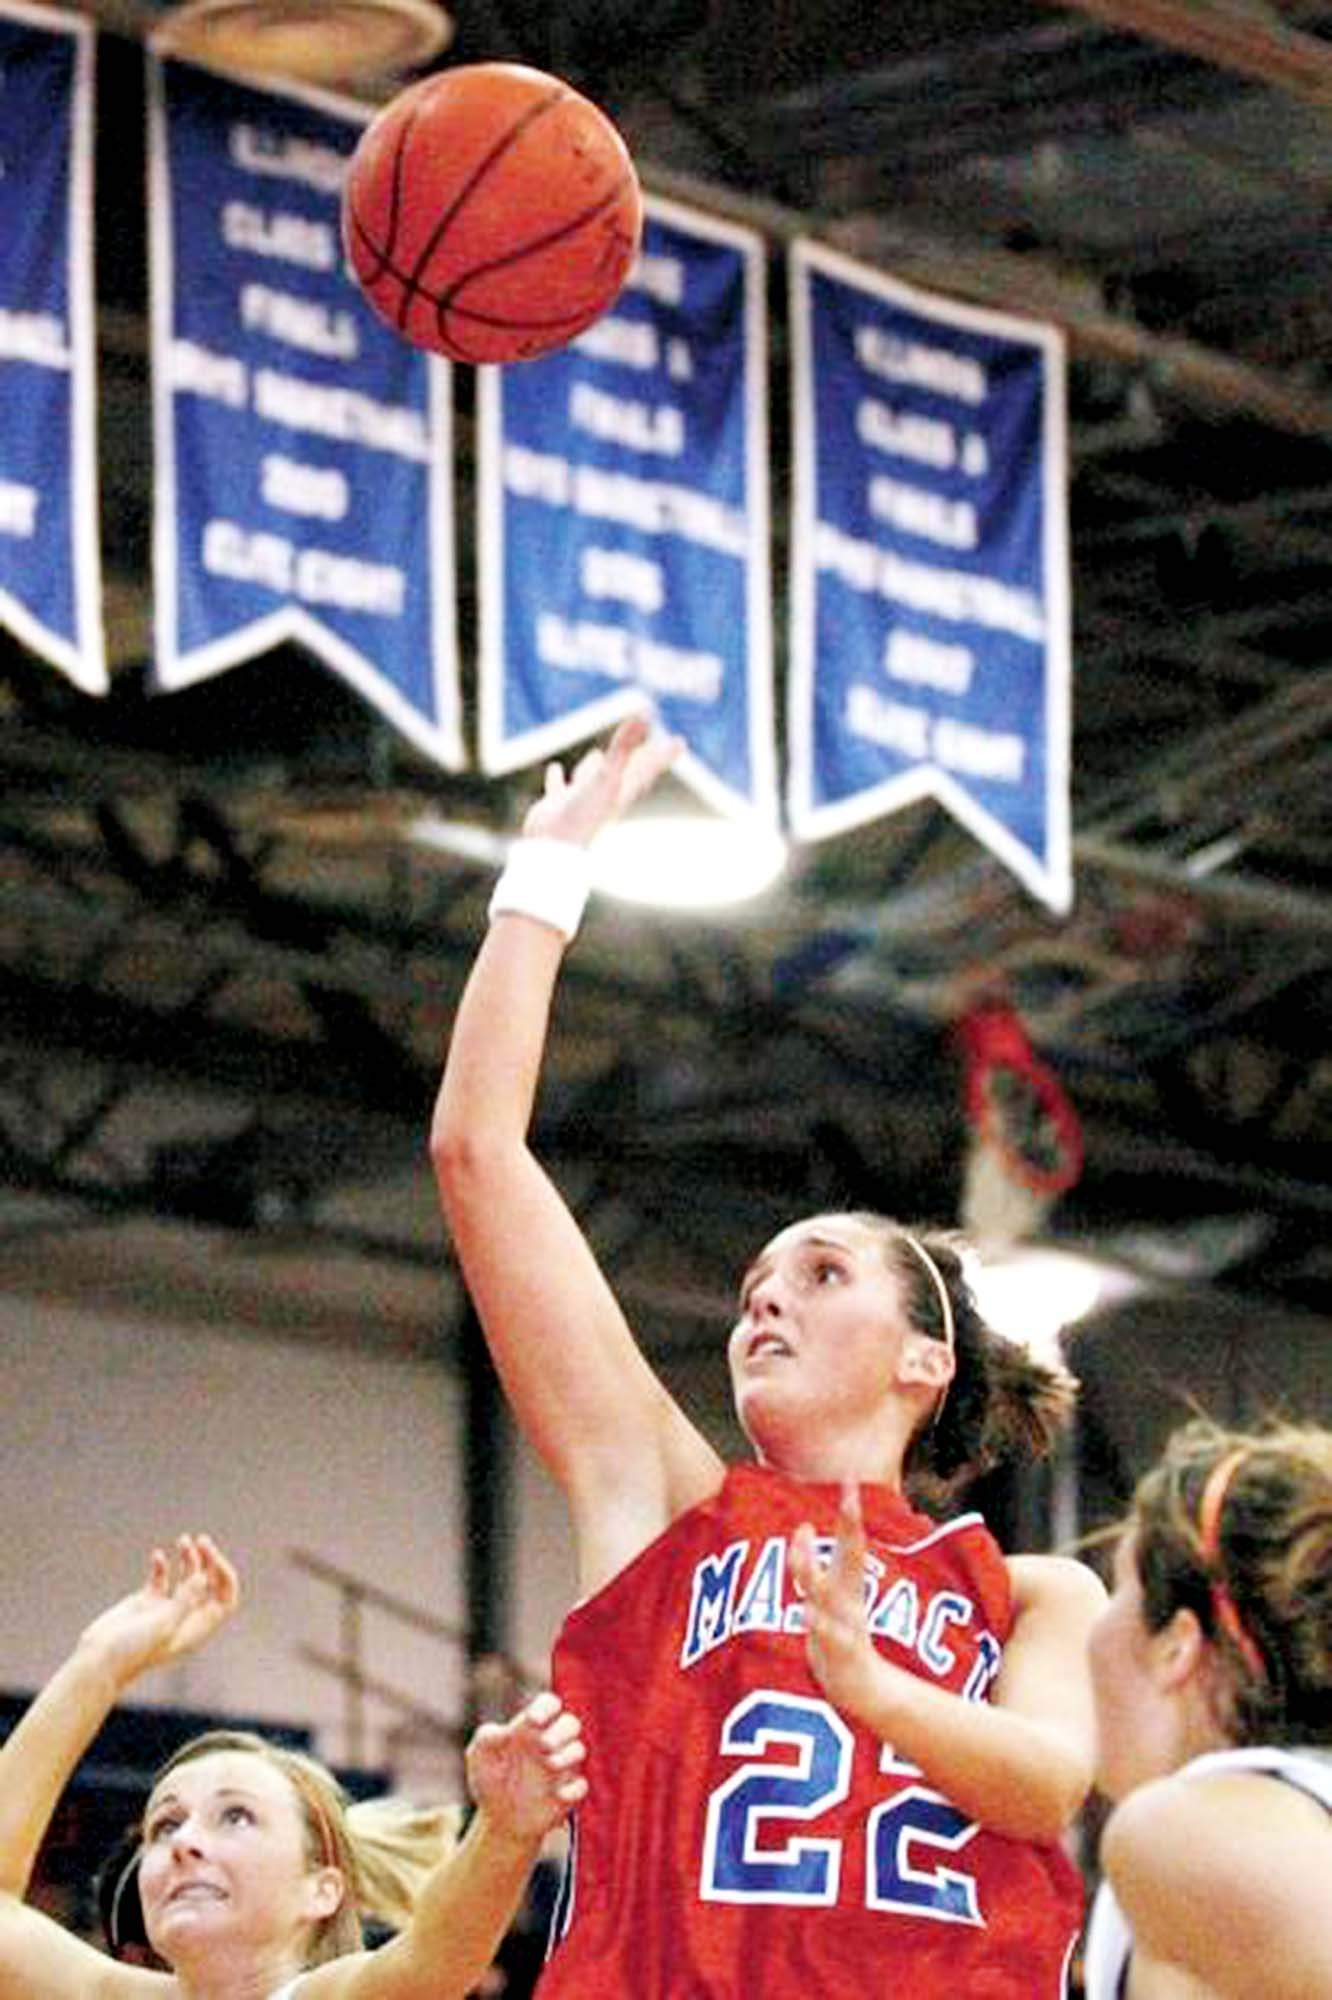 Massac County standout Destiny Mitchell will be inducted into the Illinois Basketball Coaches Association Hall Of Fame on May 4th. The former Patriot remains the school's all-time leading scorer and was named All-Conference and All-South four straight years.